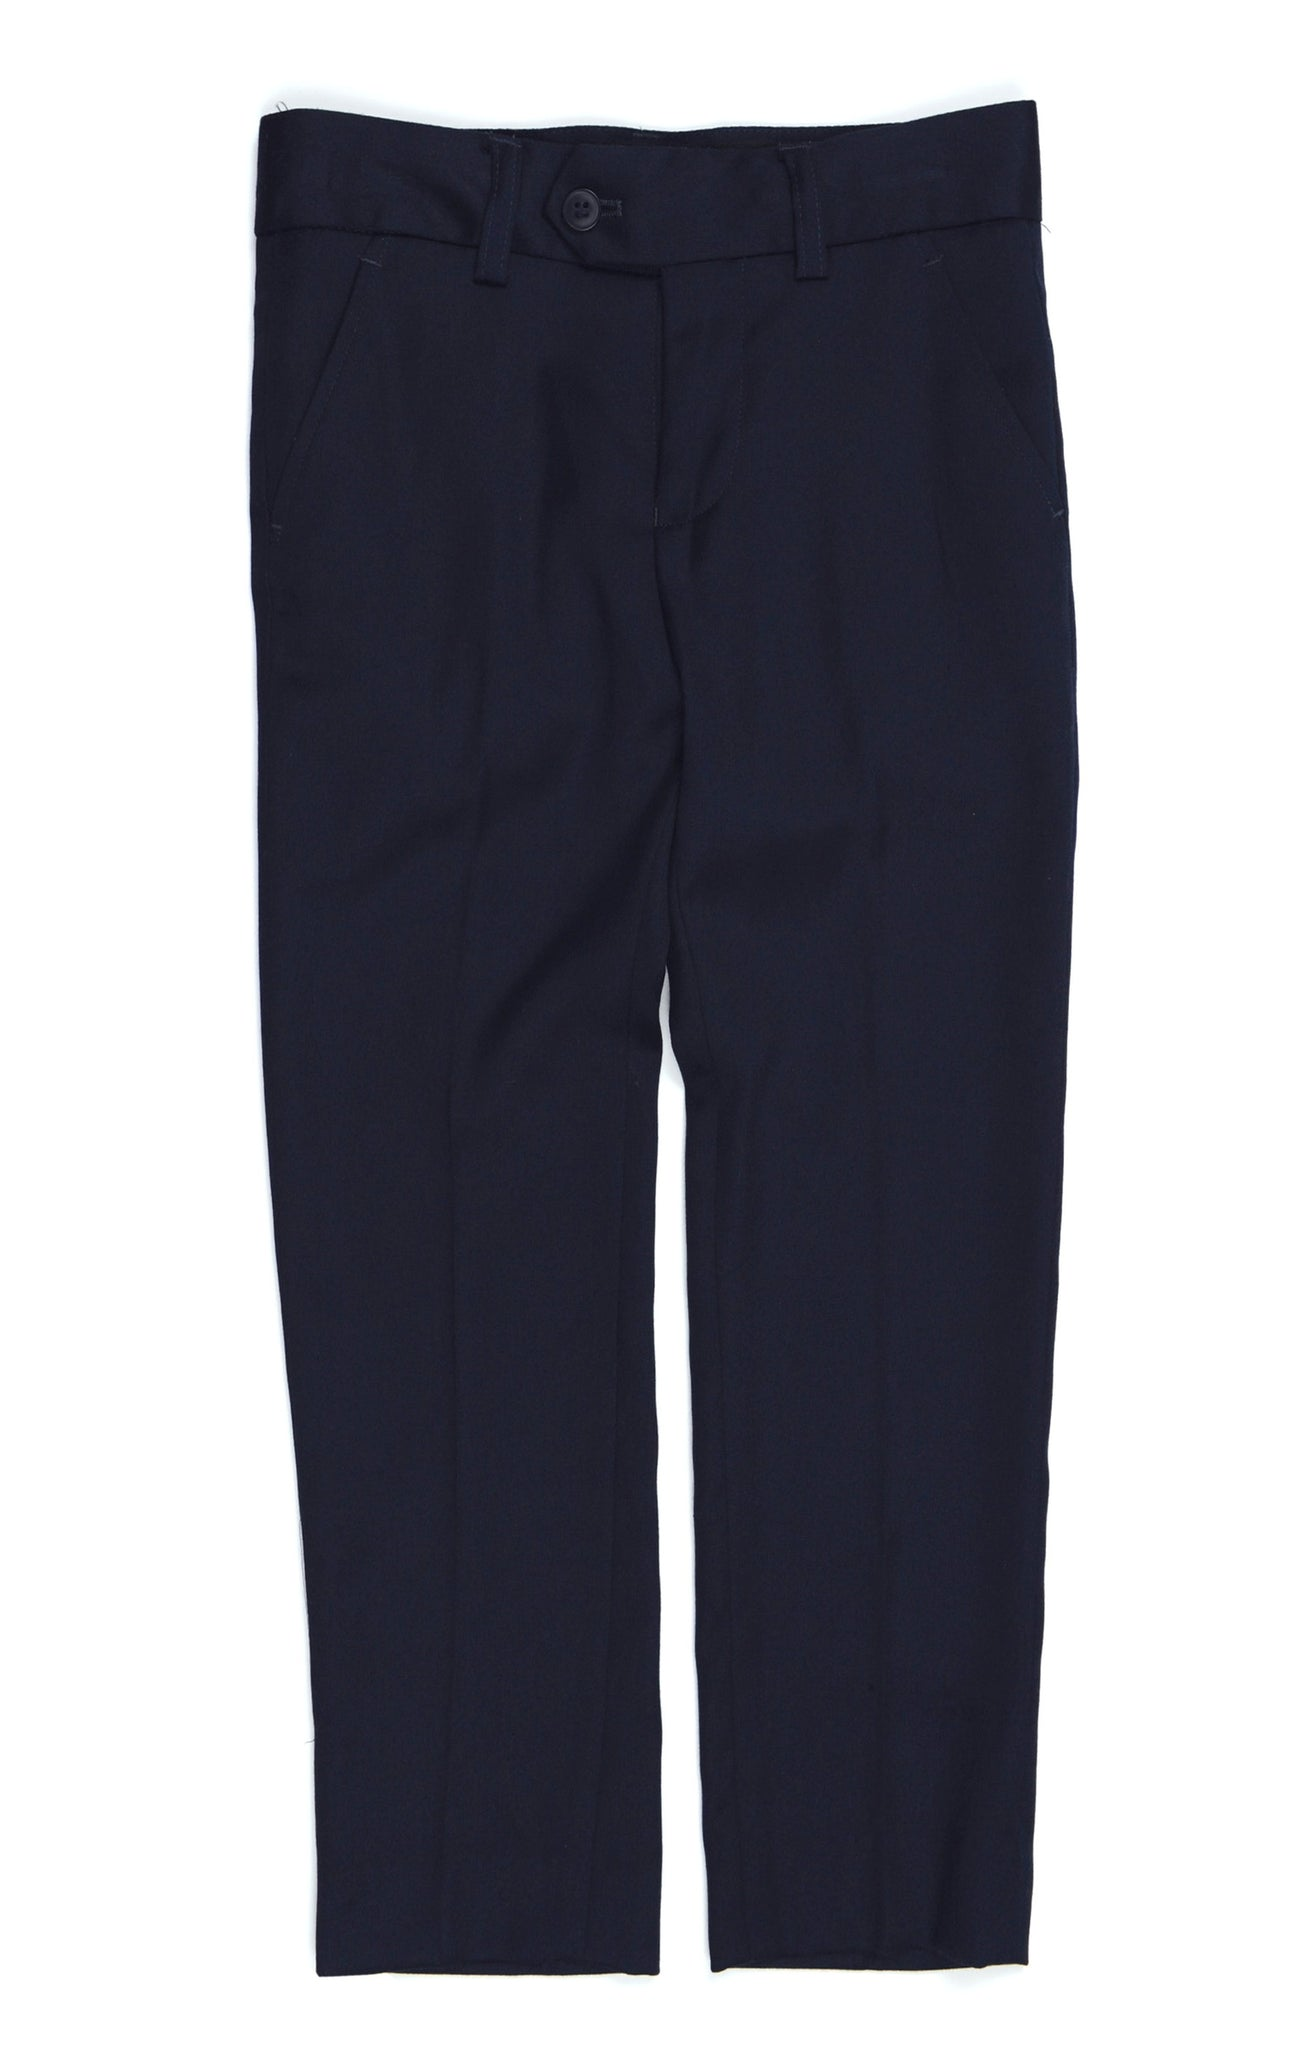 AM Navy Blue Pants